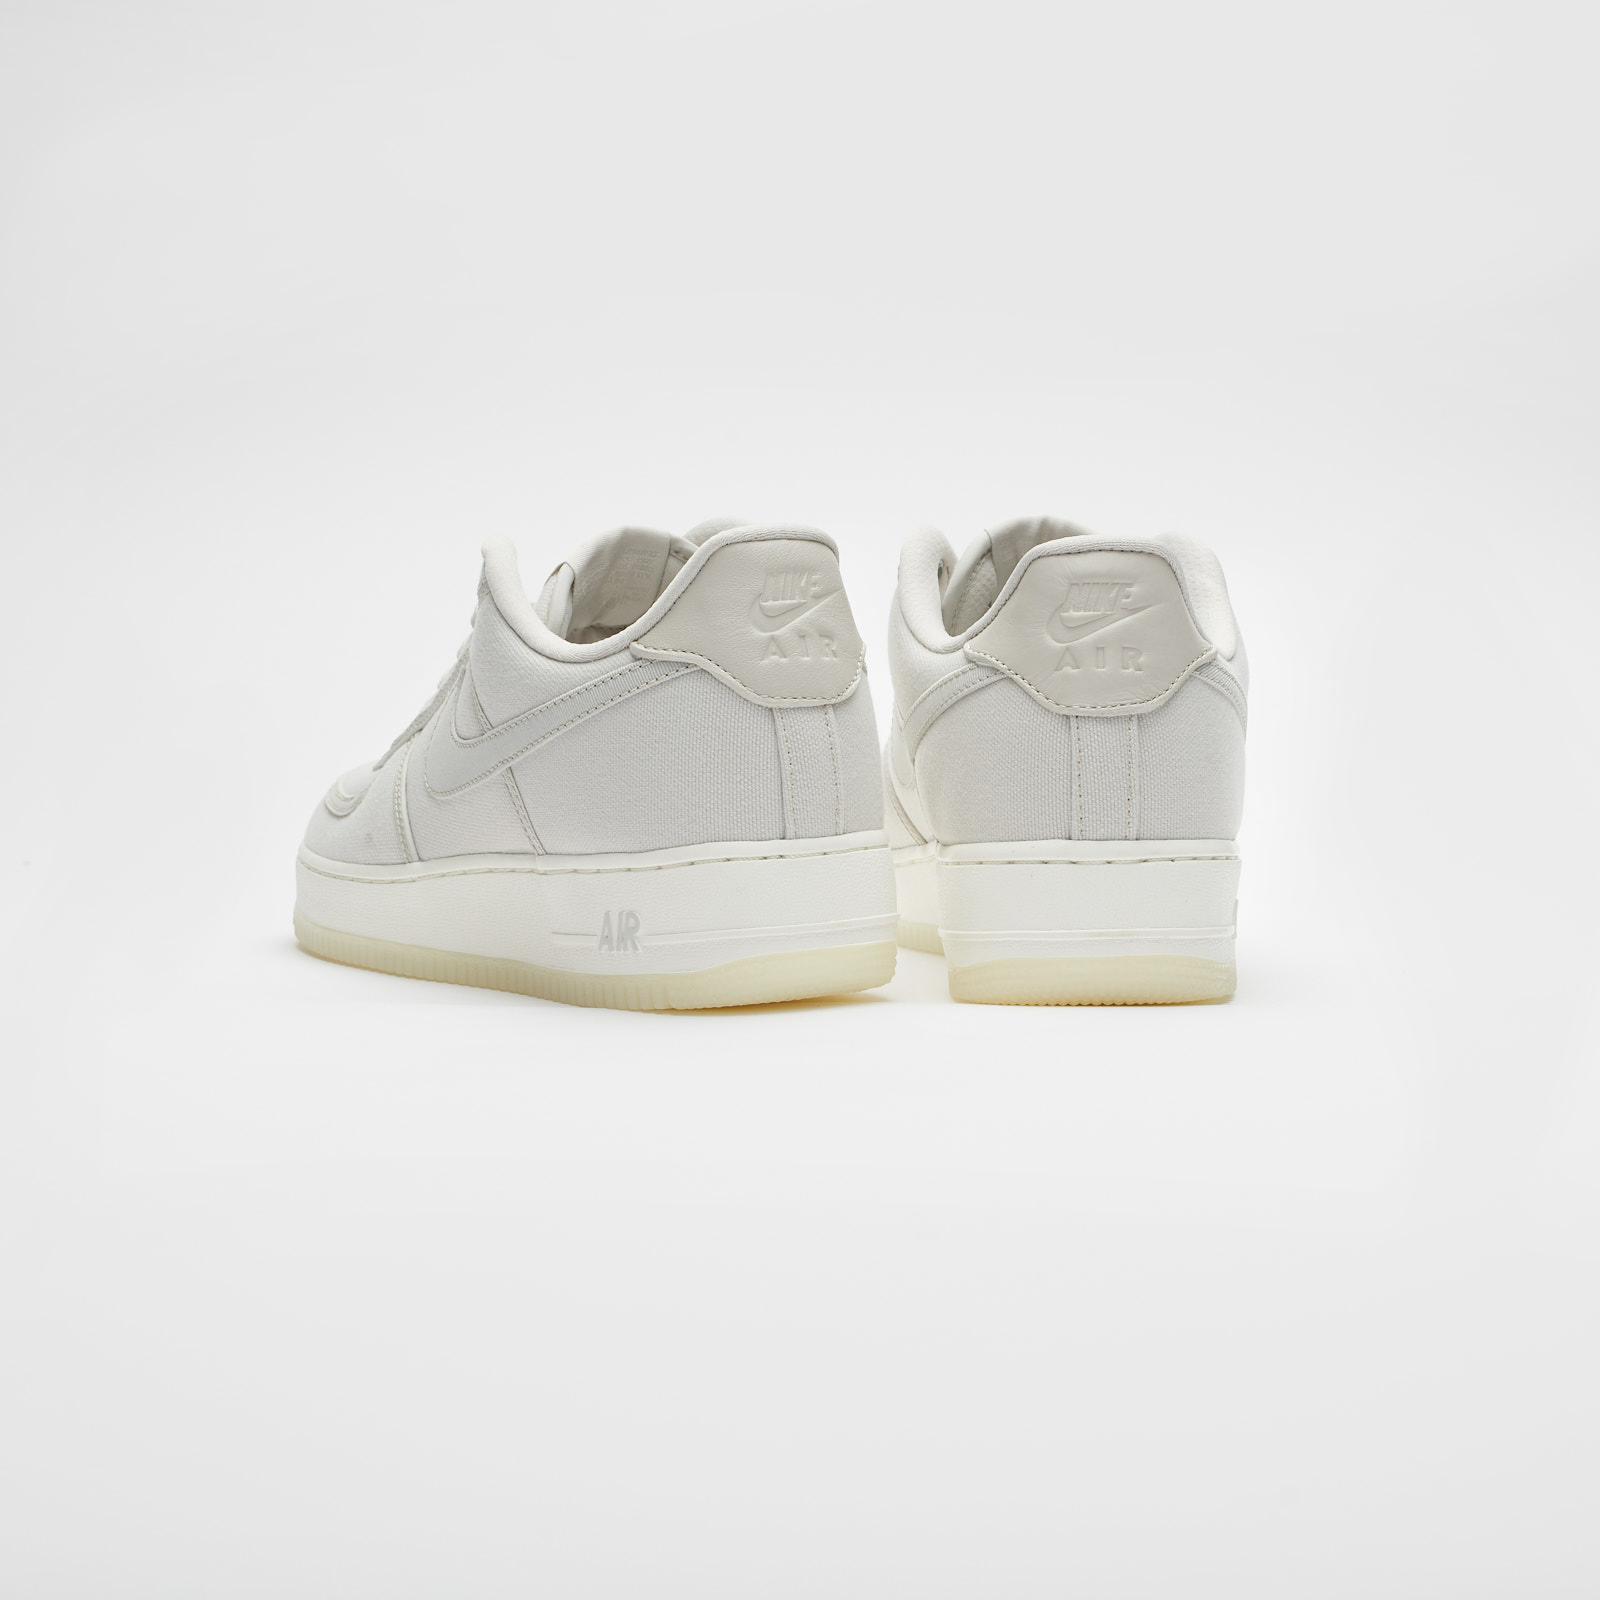 691bfb8c0 Nike Air Force 1 Low Retro QS Cnvs - Ah1067-003 - Sneakersnstuff | sneakers  & streetwear online since 1999